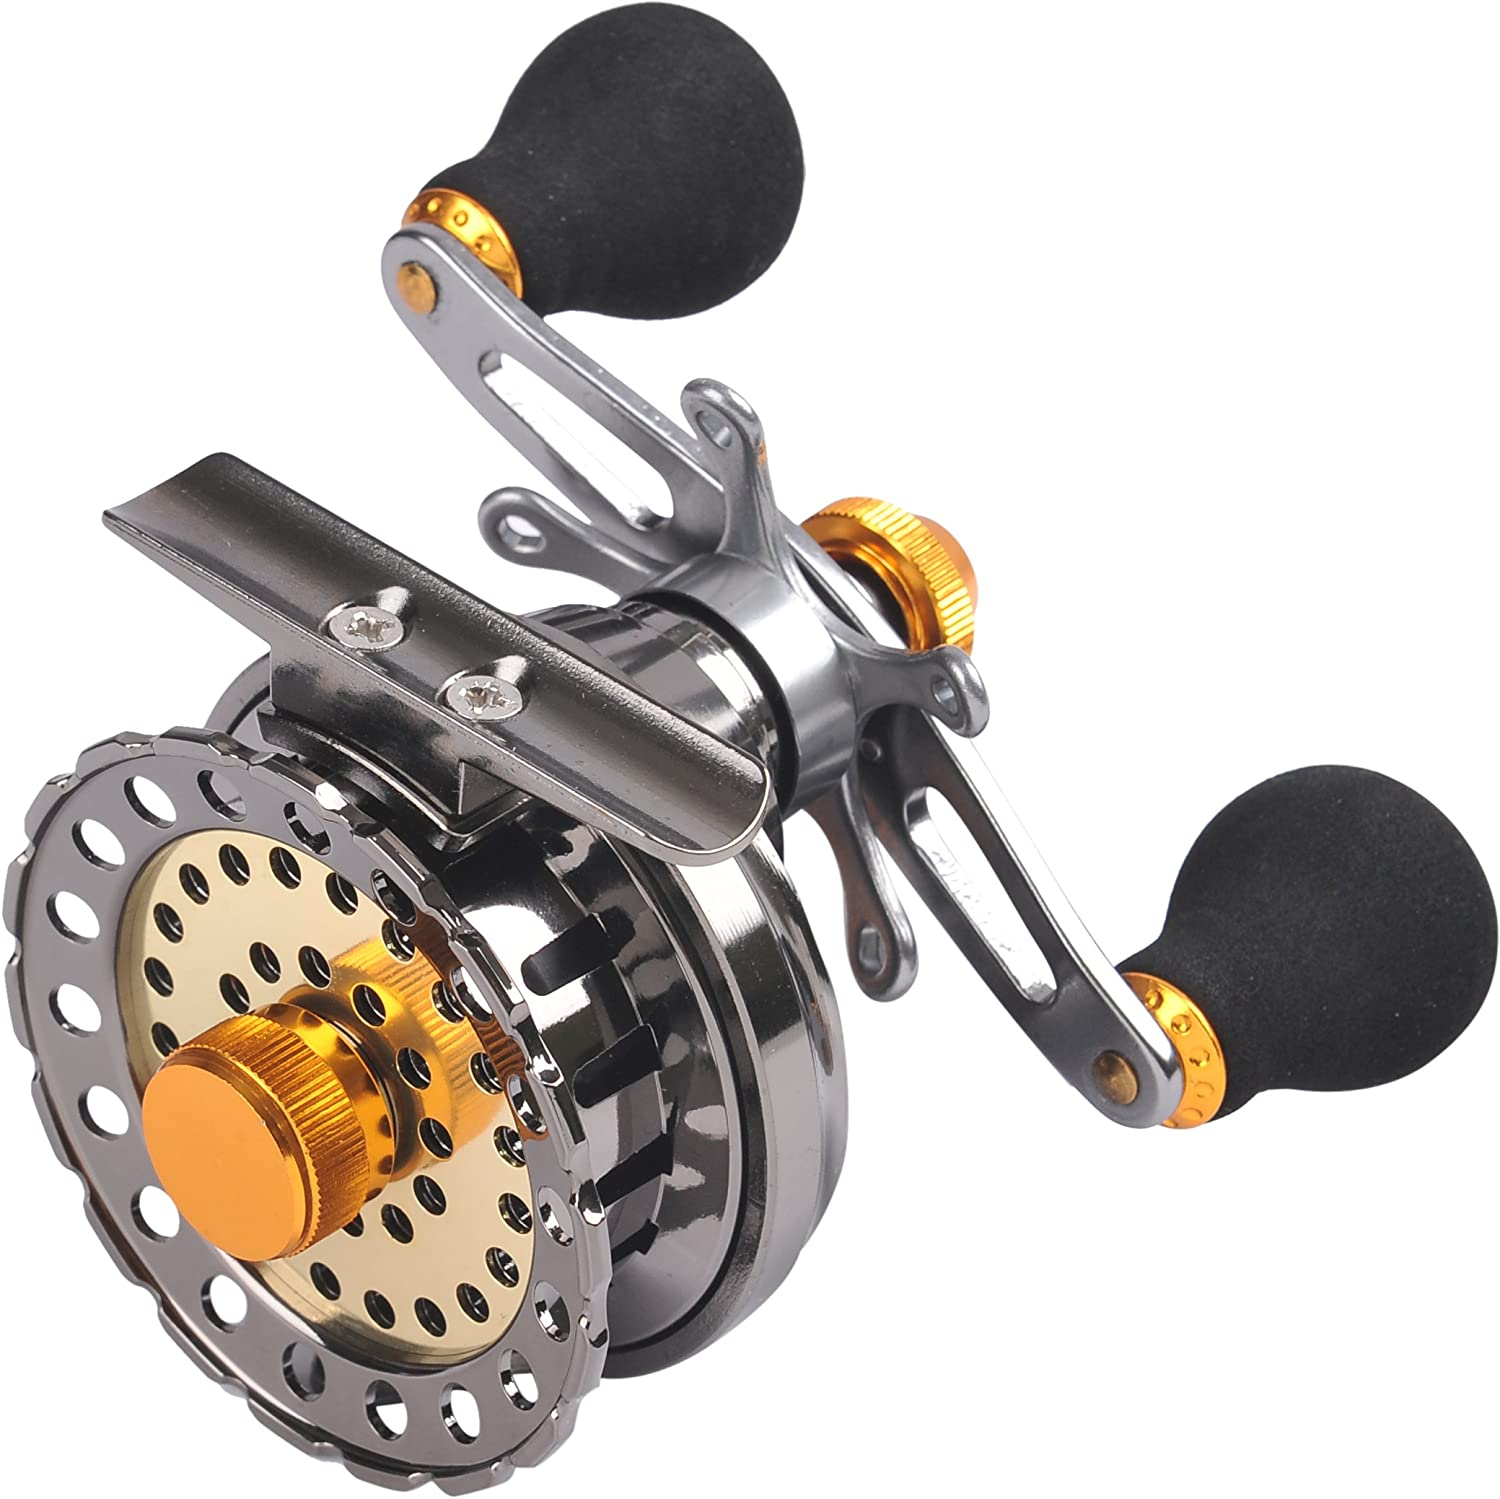 Left//Right Raft Fishing Reel with Line Counter Fly Ice Reels Saltwater Reel